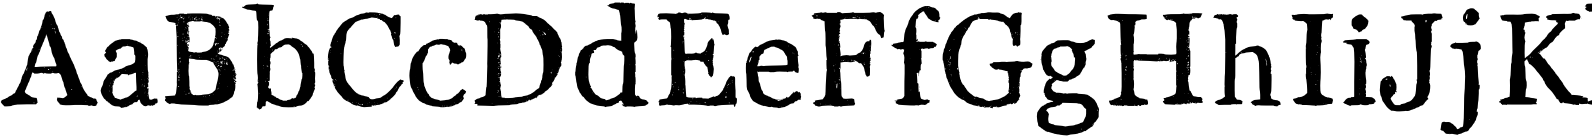 Julian Regular Font